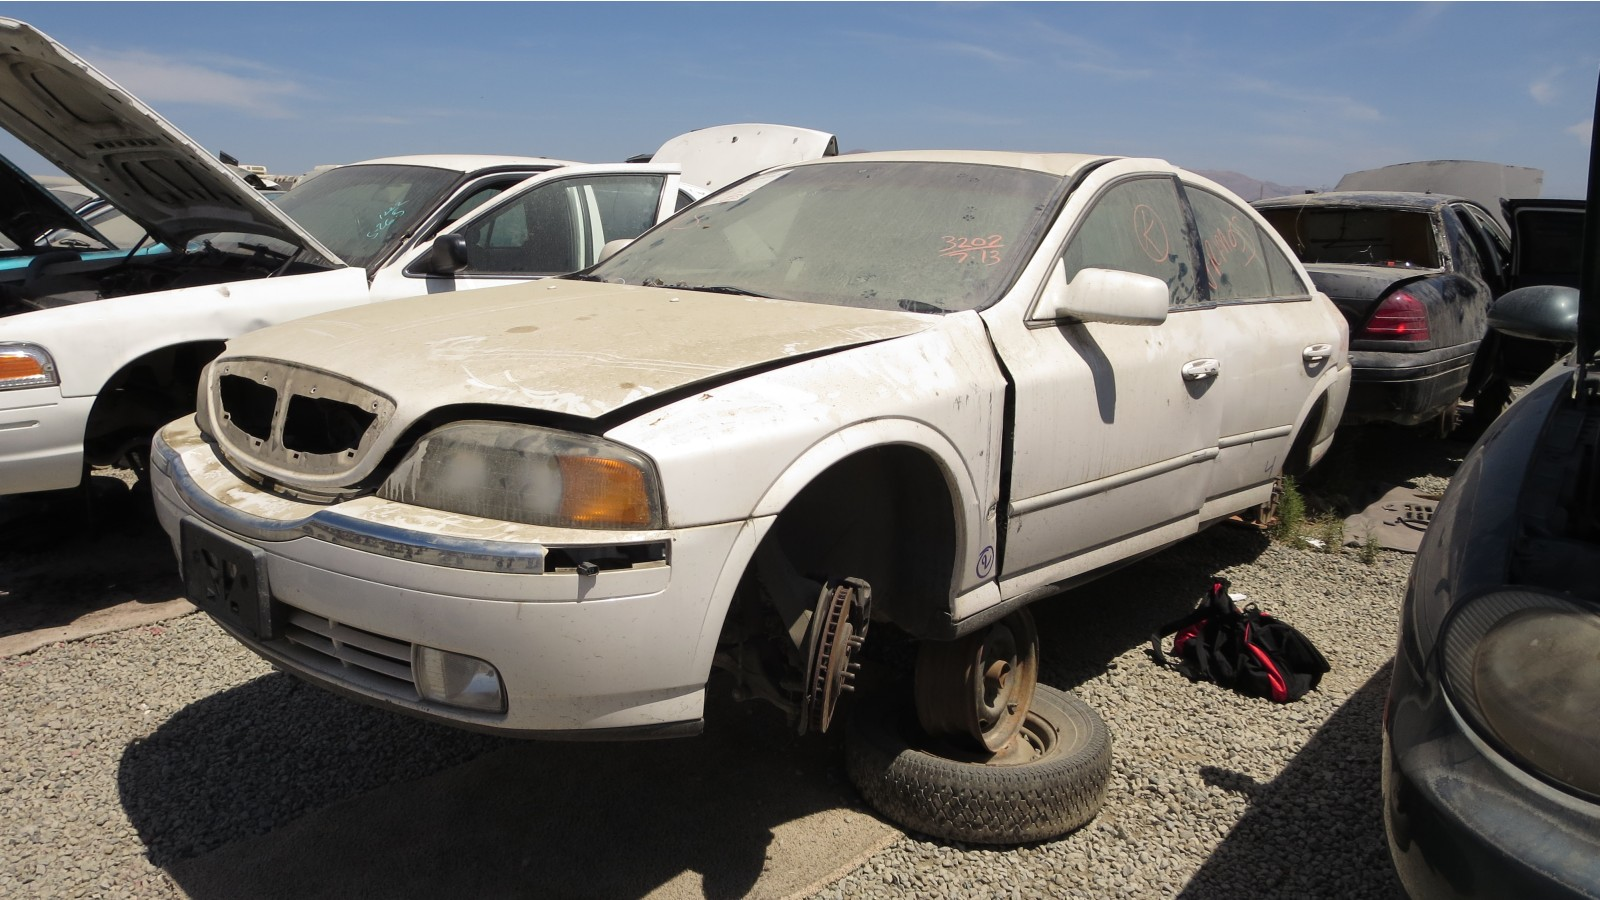 2000 Lincoln Ls Junkyard Find. An Error Occurred. Lincoln. 2001 Lincoln Ls Transmission Line Diagram At Scoala.co